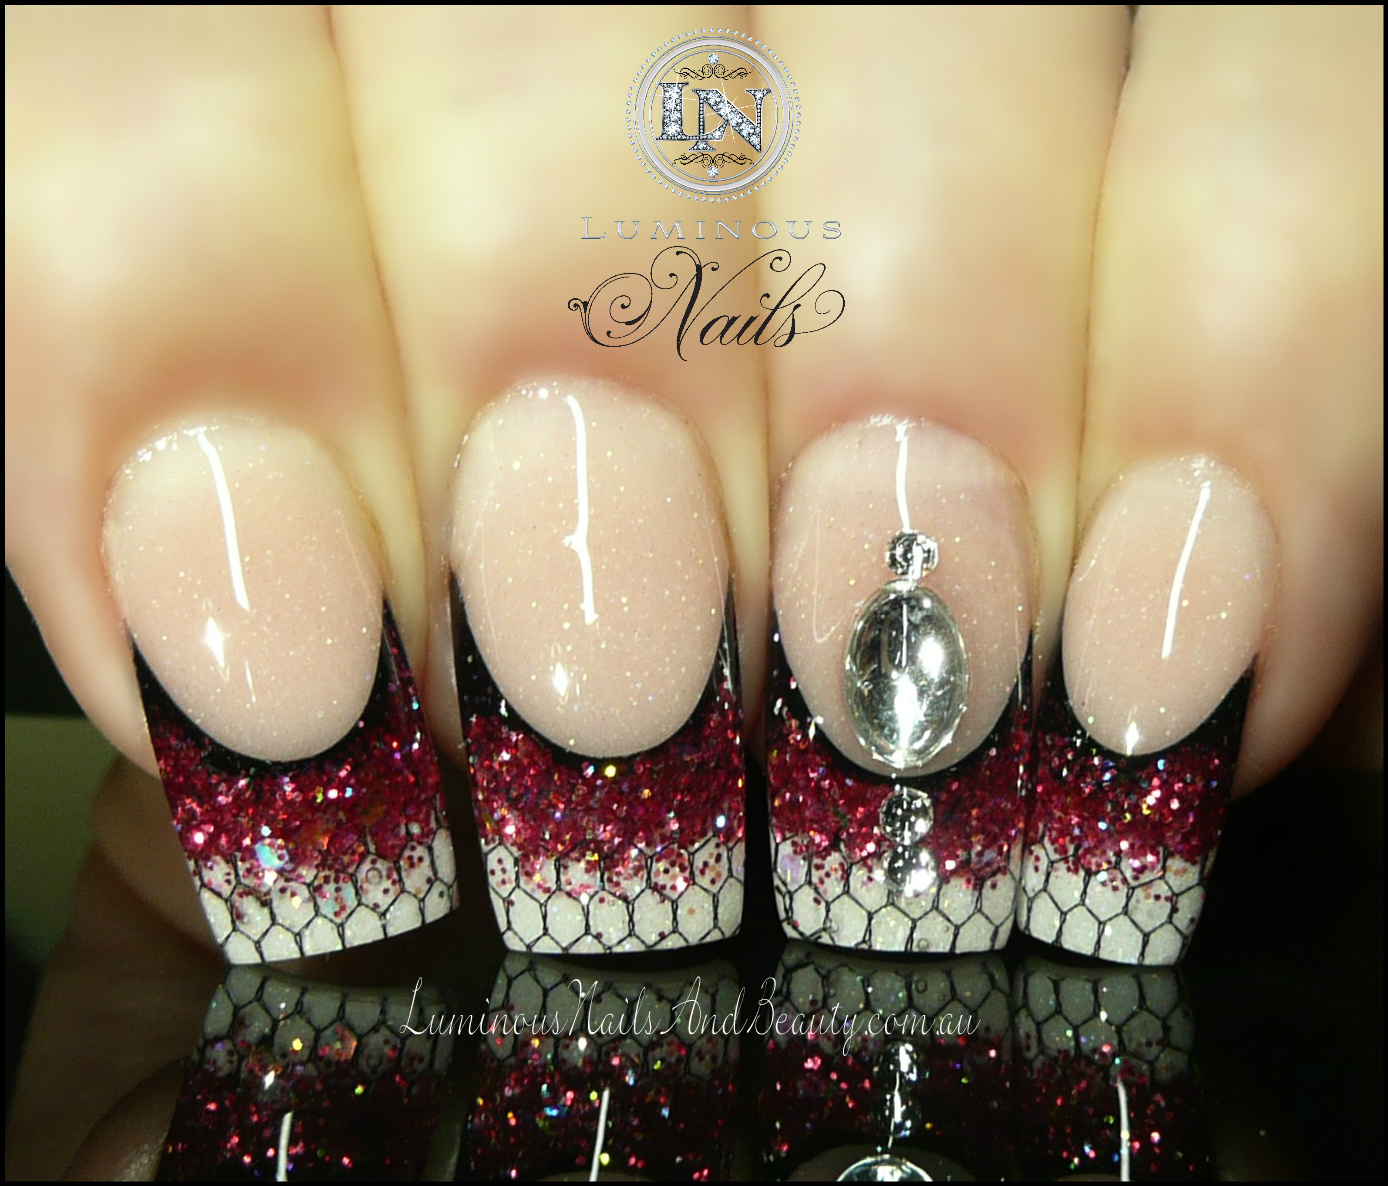 The Enchanting Gold acrylic nail designs Digital Photography